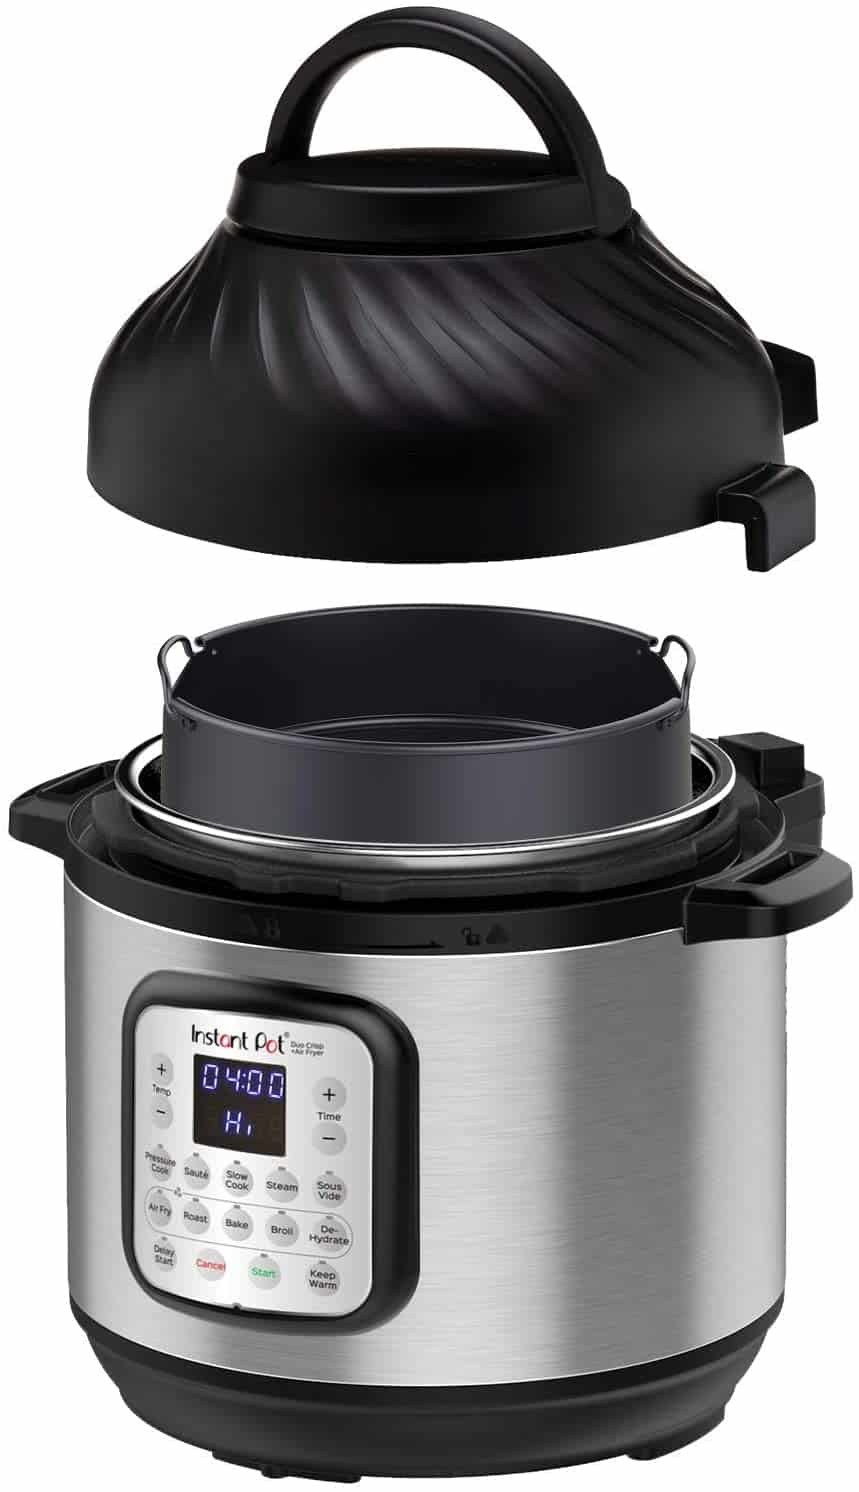 Instant Pot and Air Fyer Combination Model